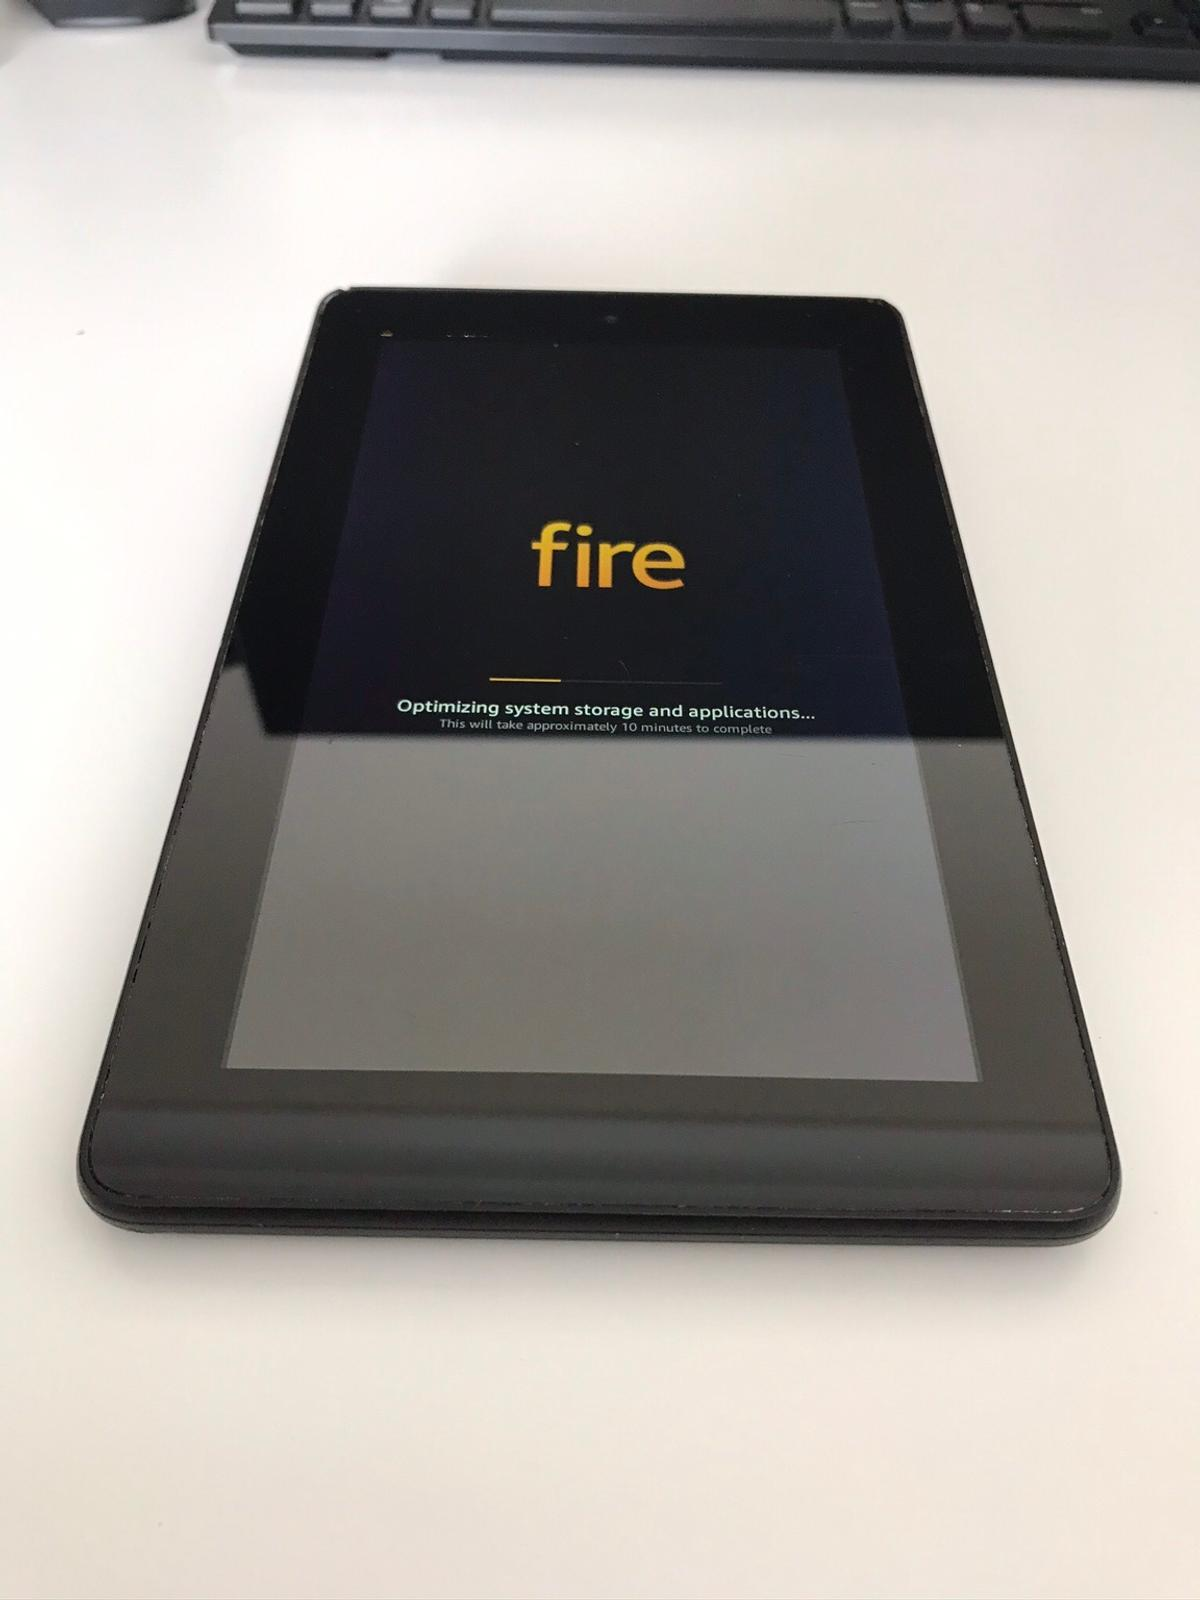 Amazon Fire 5th Generation 8G, WiFi, 7inch clear display Great, full working condition Responsive and efficient to use Sold as seen with charger Collection preferred. Local delivery for fee.